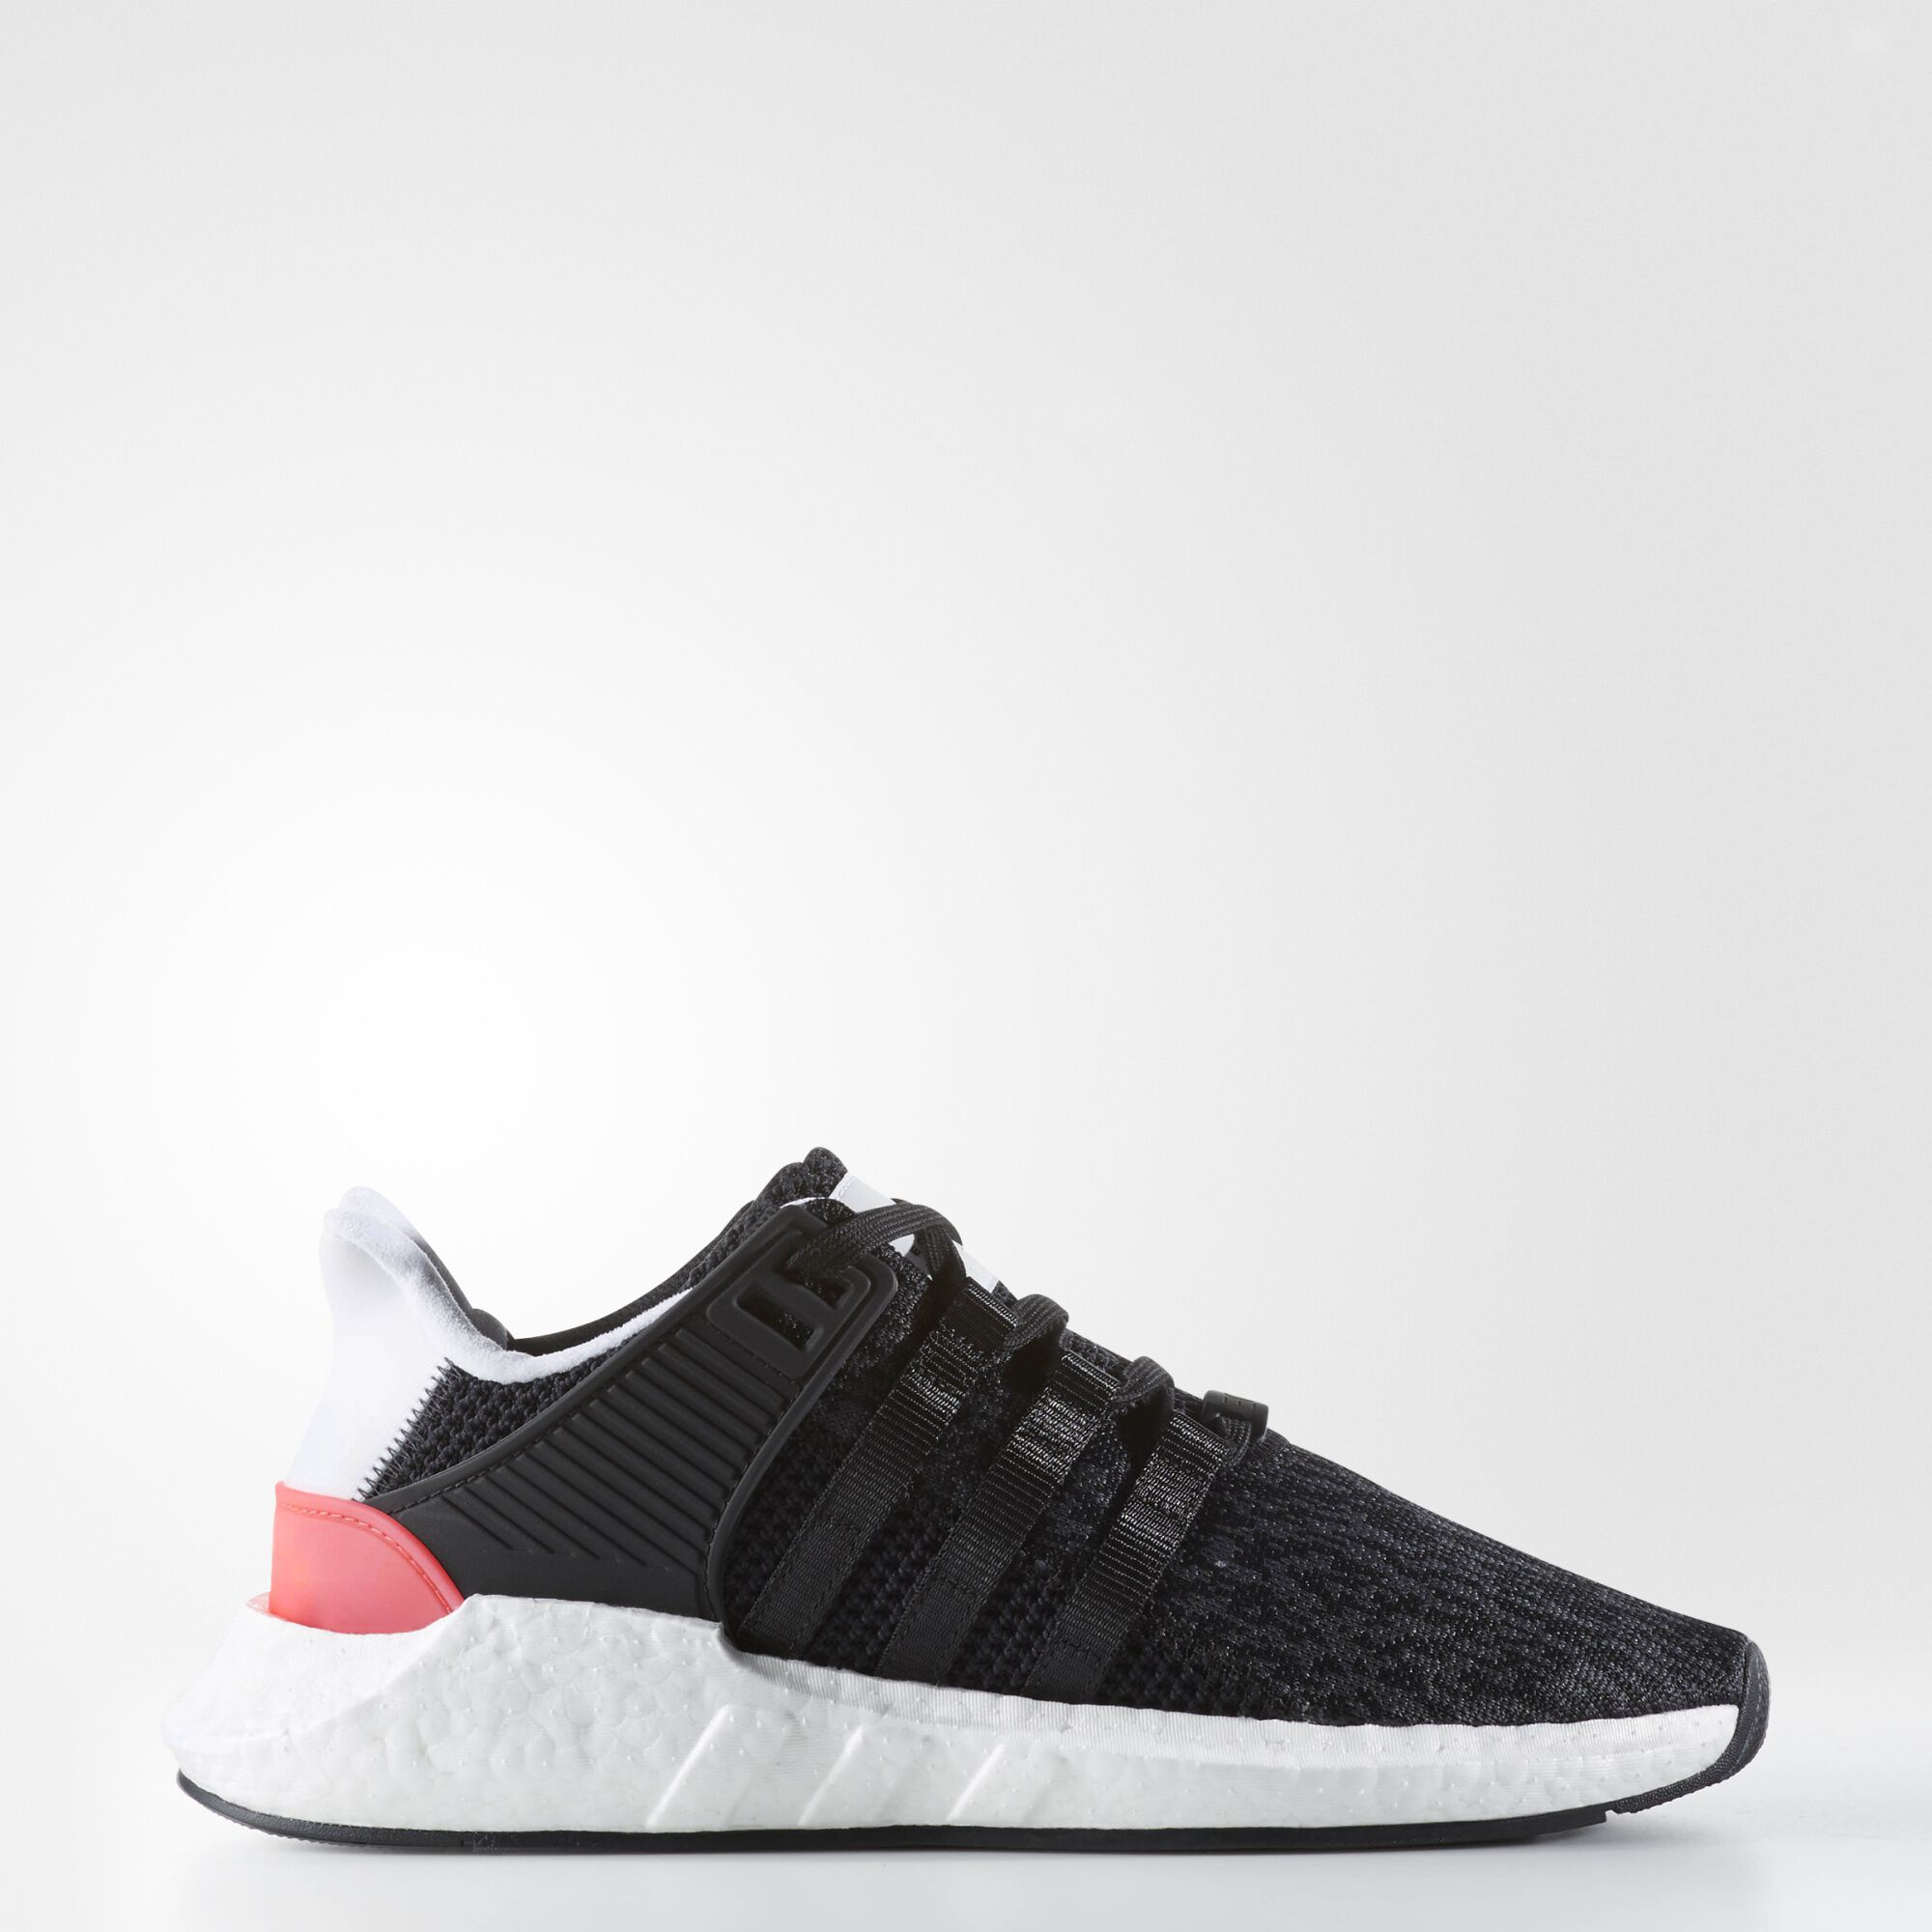 adidas EQT 93 16 Ultra Boost Concepts S80559 Sage Men's Shoes